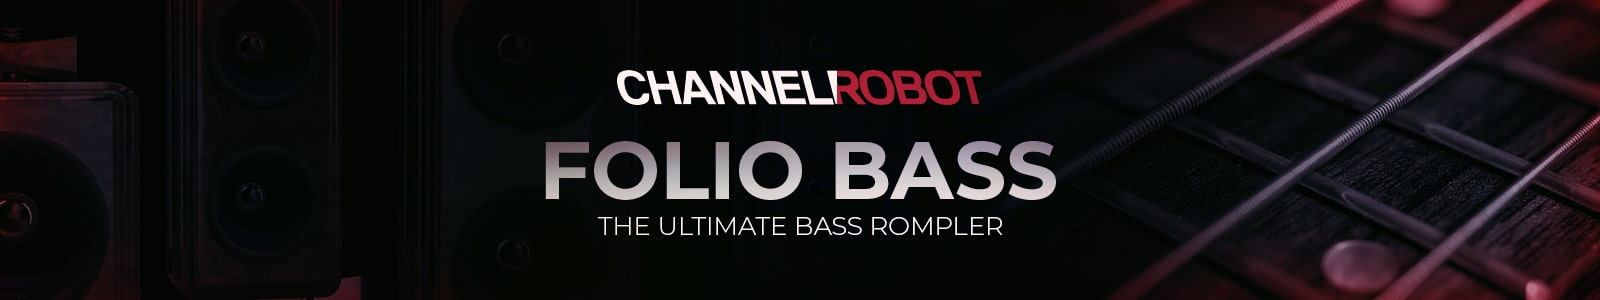 folio bass by channel robot